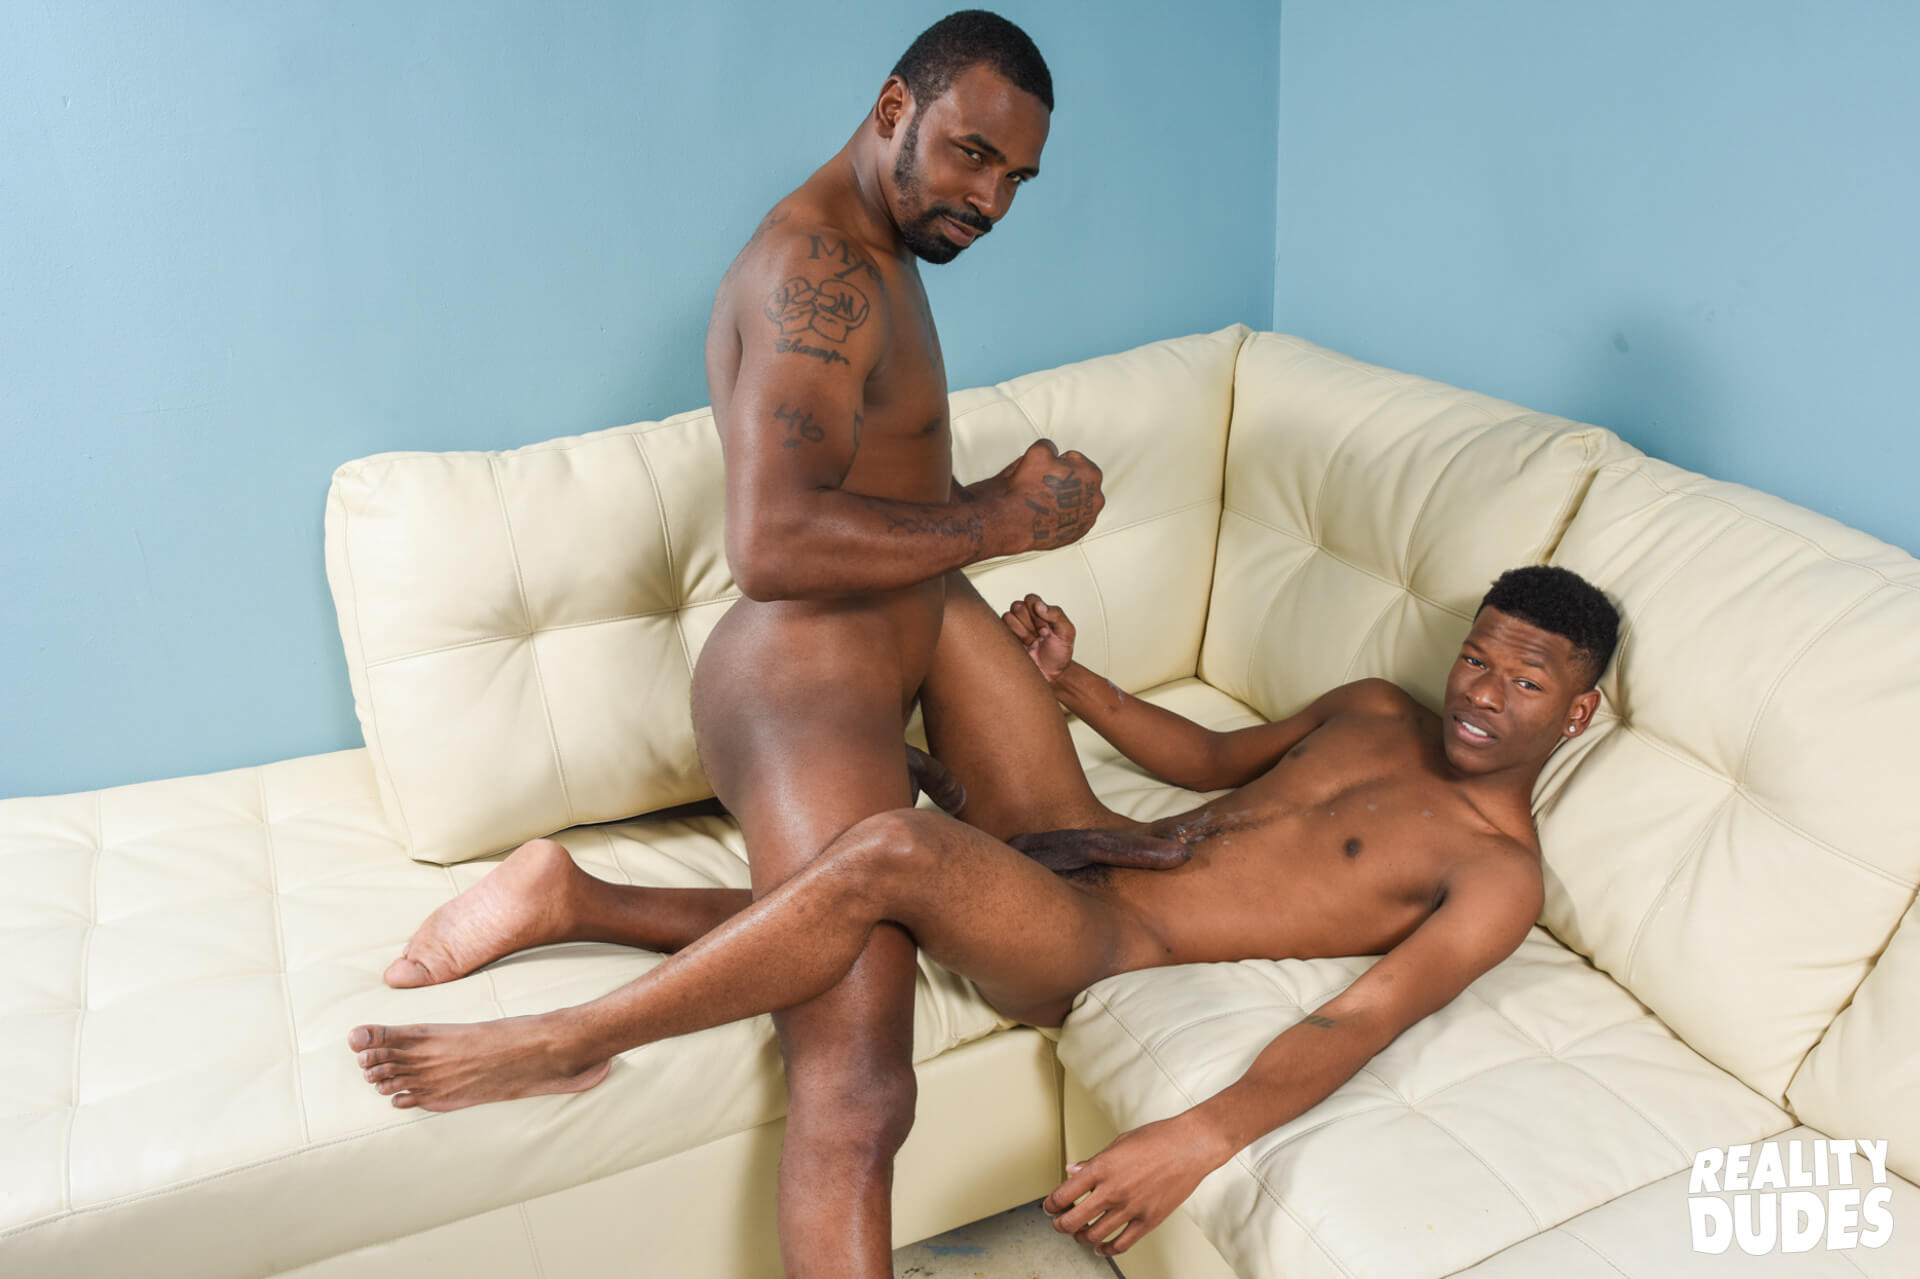 reality dudes reality thugs philly mack attack kylan gay porn blog image 50